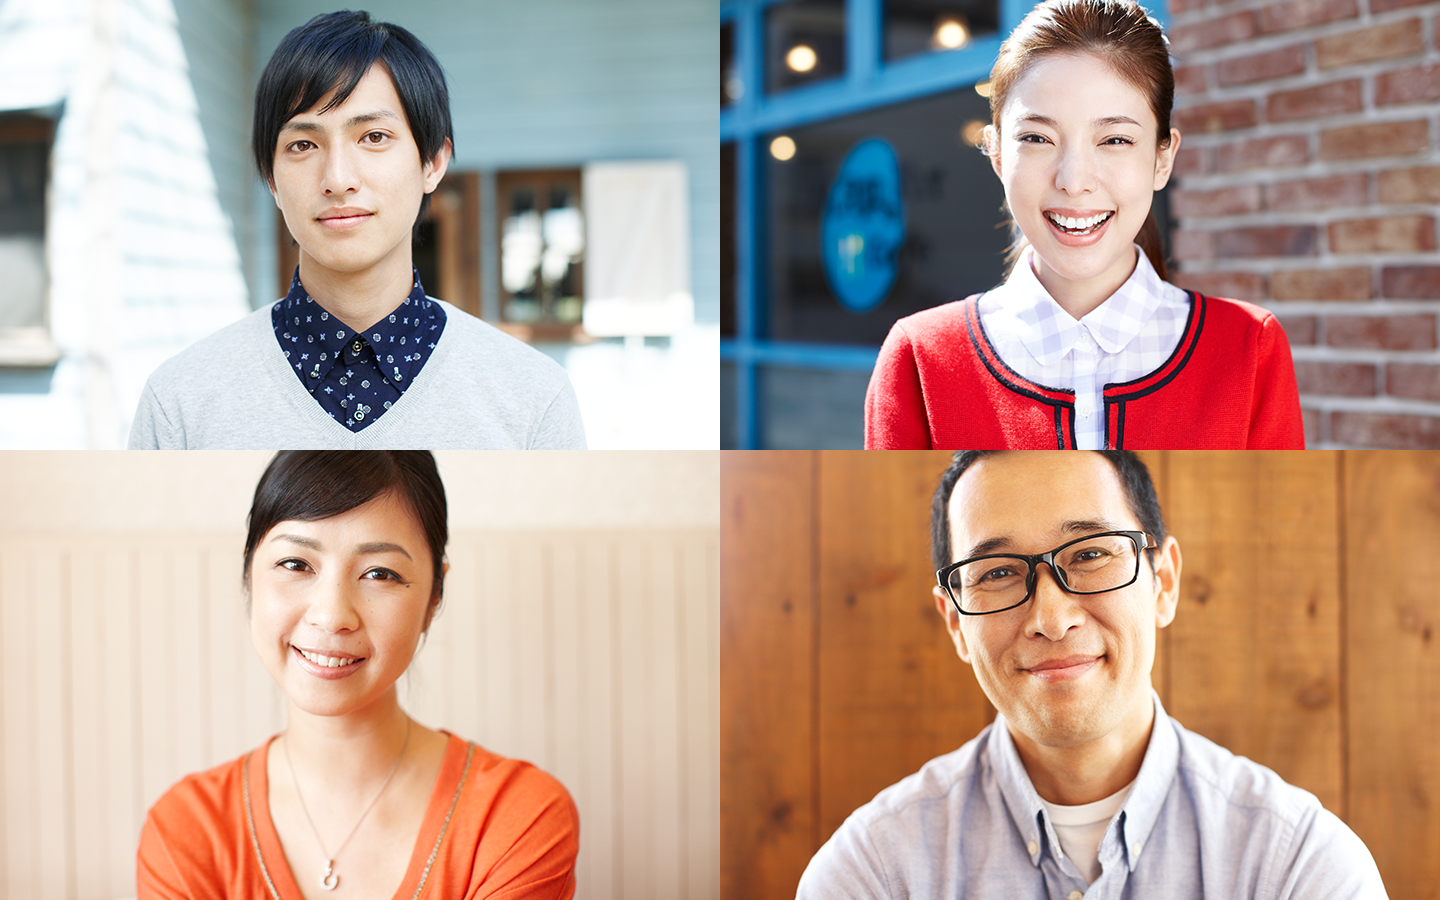 Portraits for Square's Launch in Japan